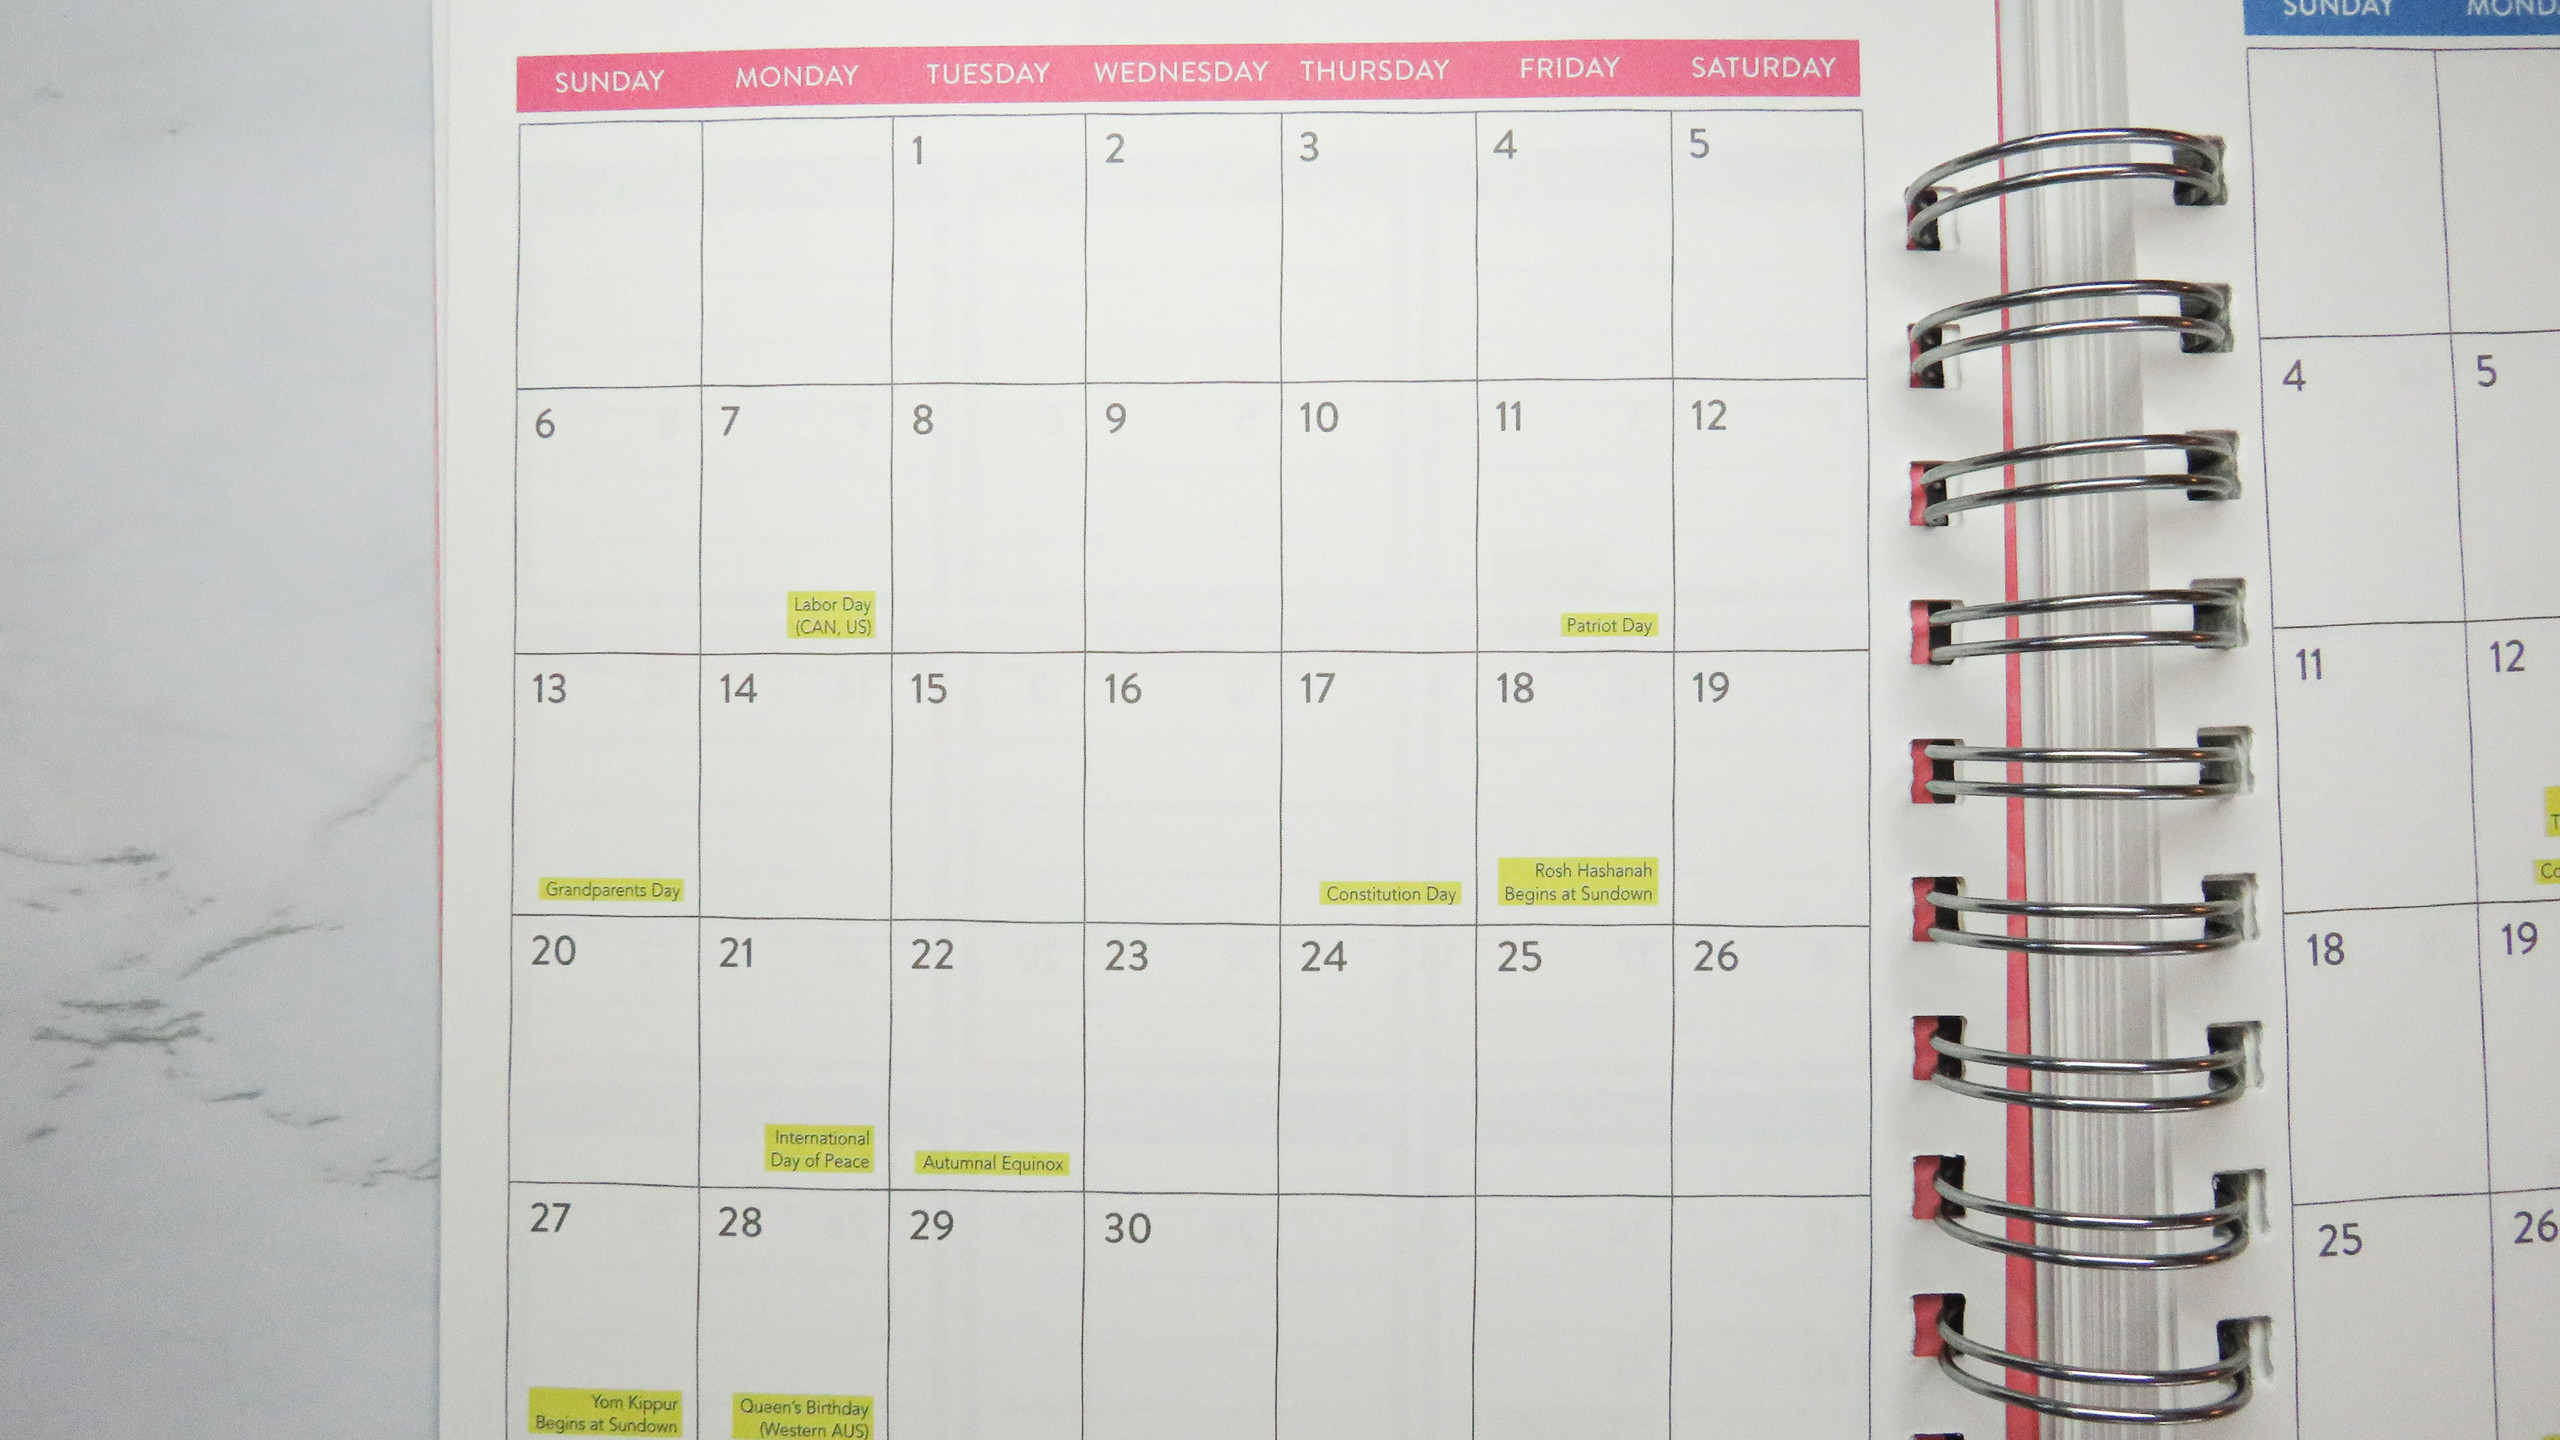 Monthly calendar view in the Do It All Weekly Planner